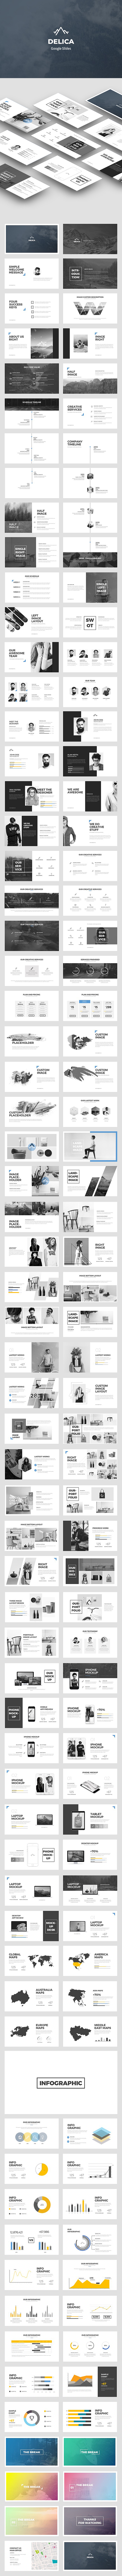 Delica Google Slides Presentation - Google Slides Presentation Templates